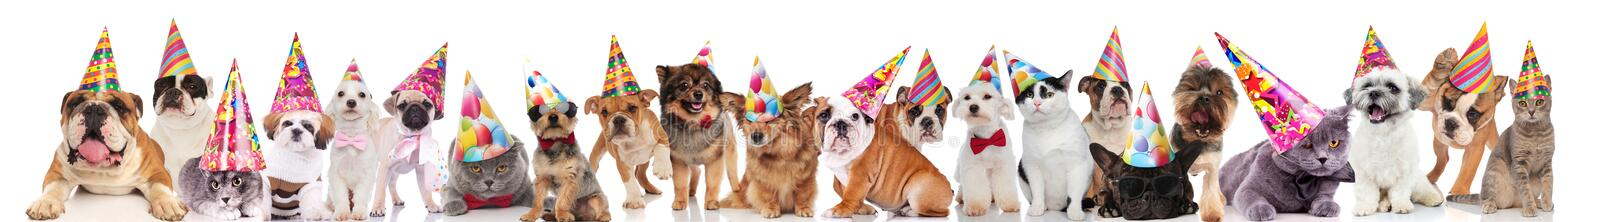 Party dogs and cats with birthday hats on white background. Party dogs and cats with birthday hats standing, sitting and lying on white background stock image